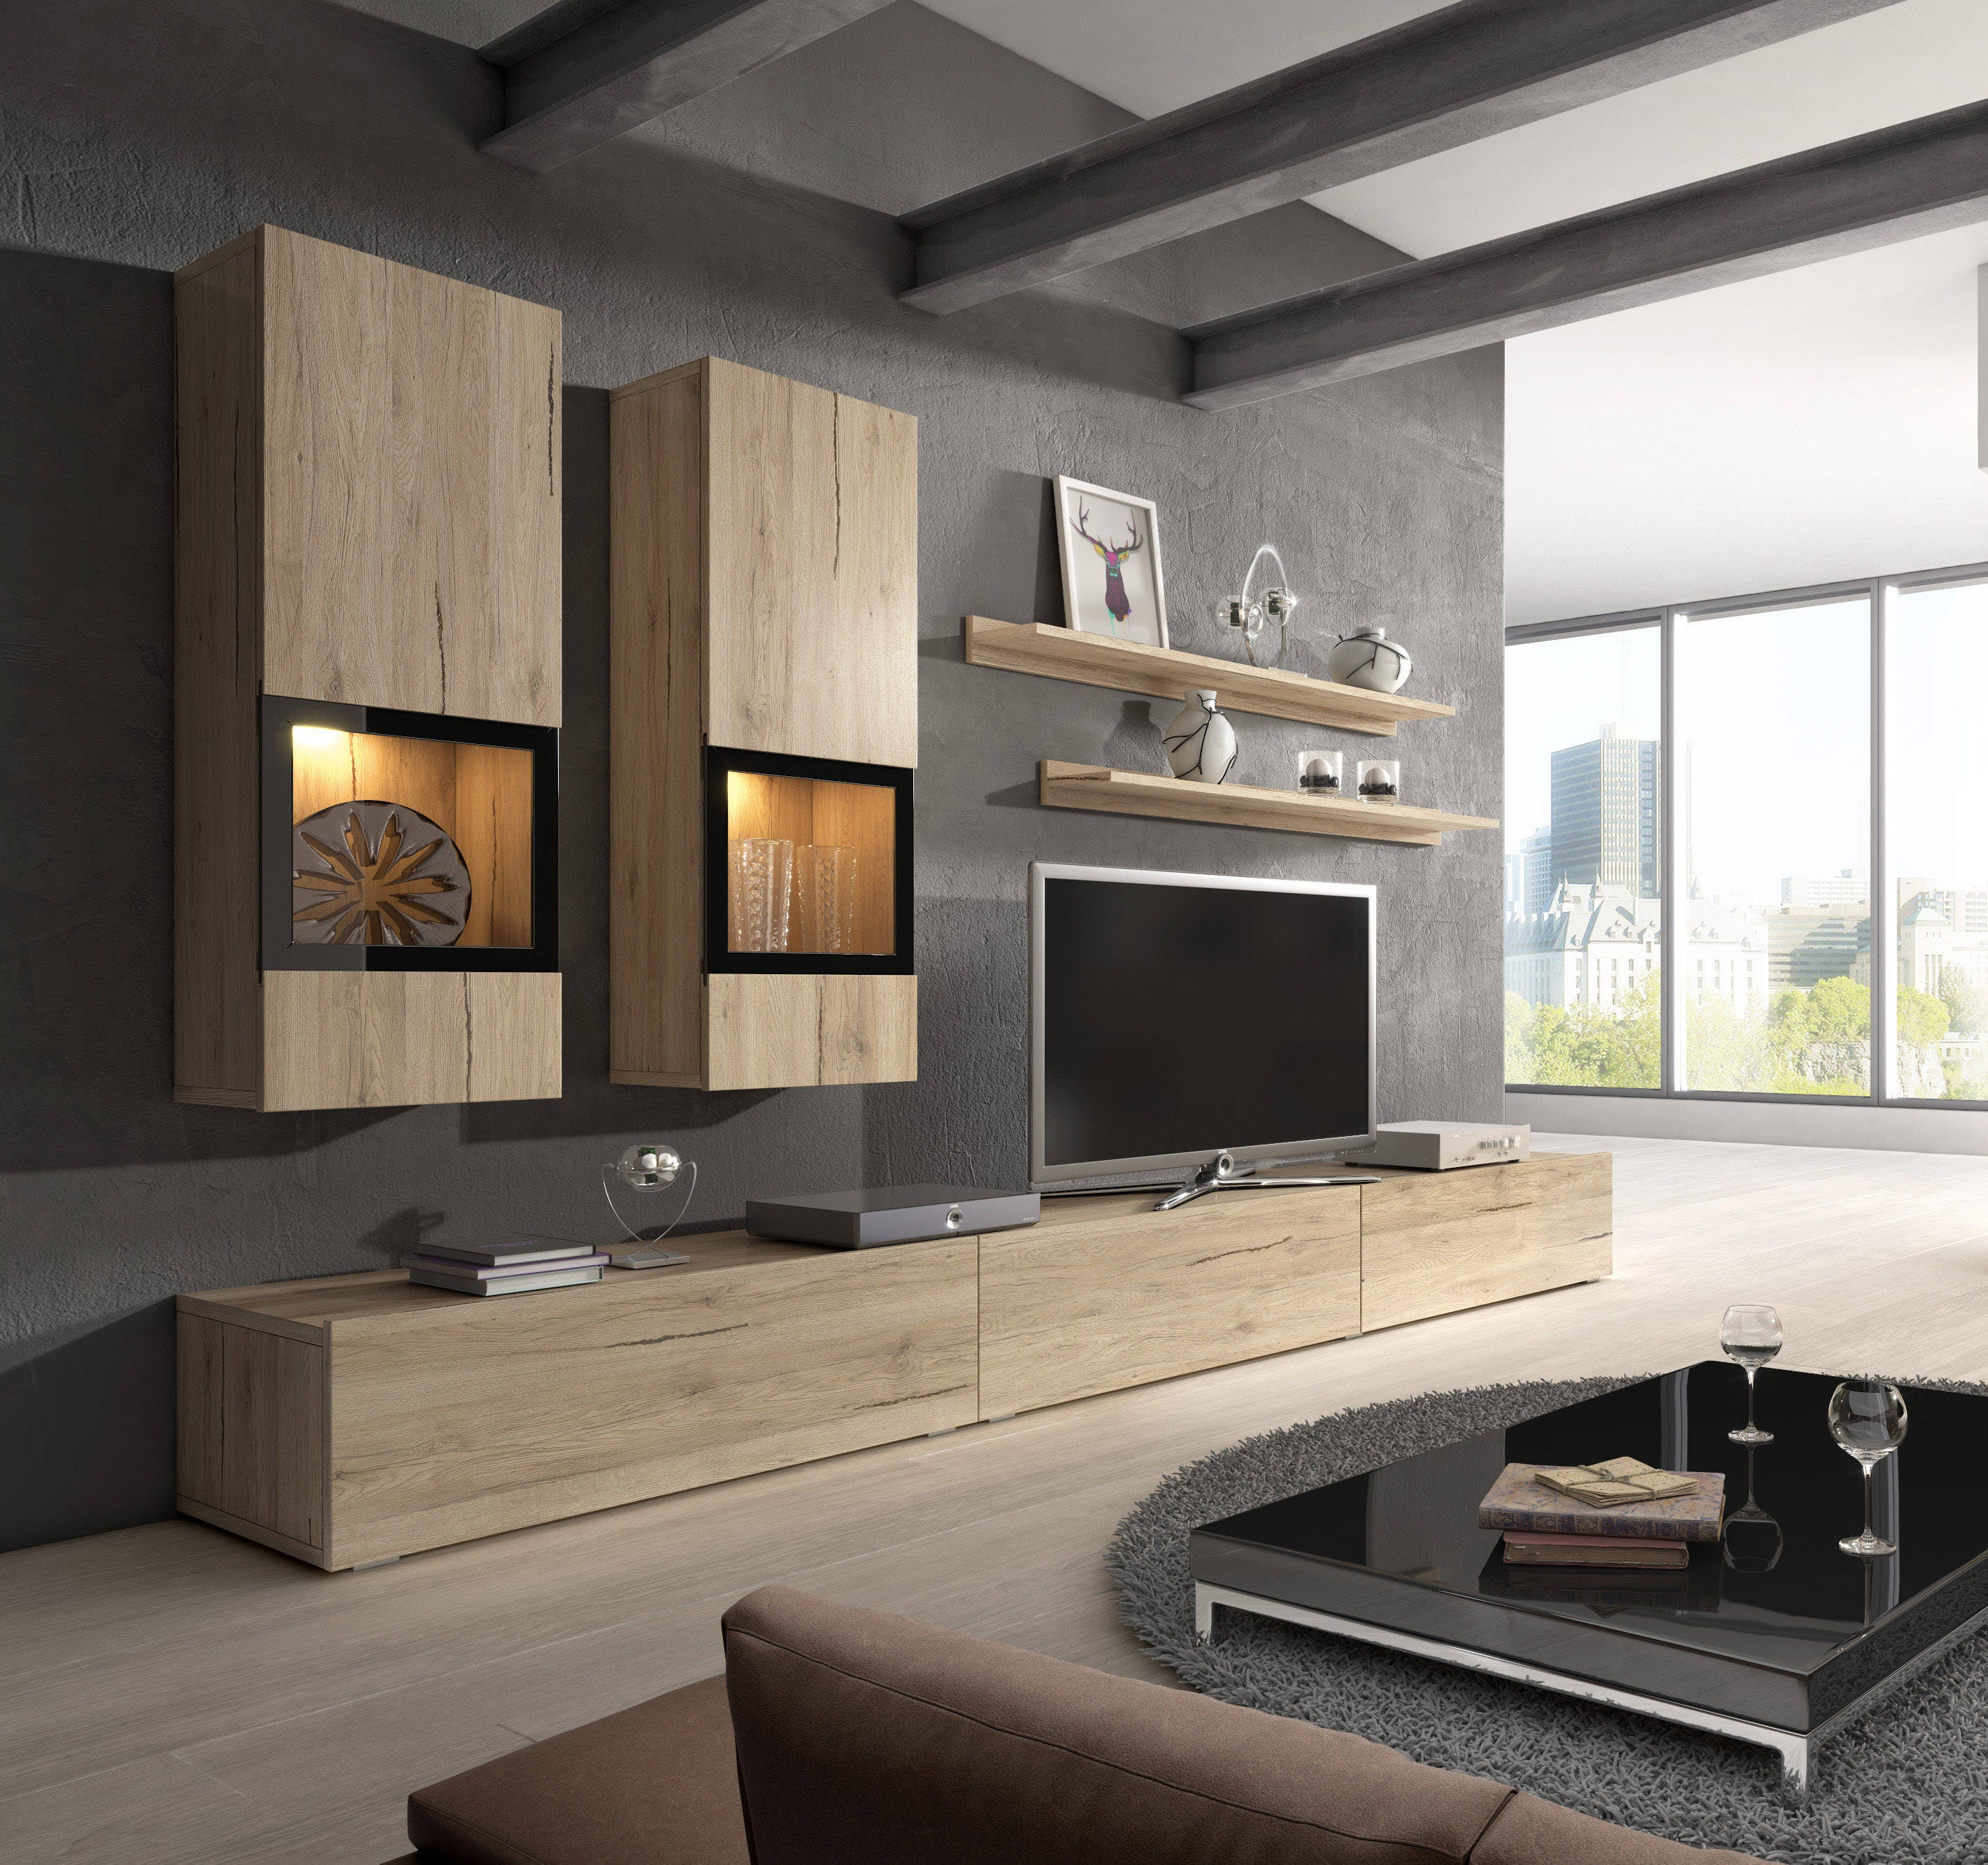 Baros Wall Unit Modern Entertainment Center With Led Lights # Muebles Full House Colombia